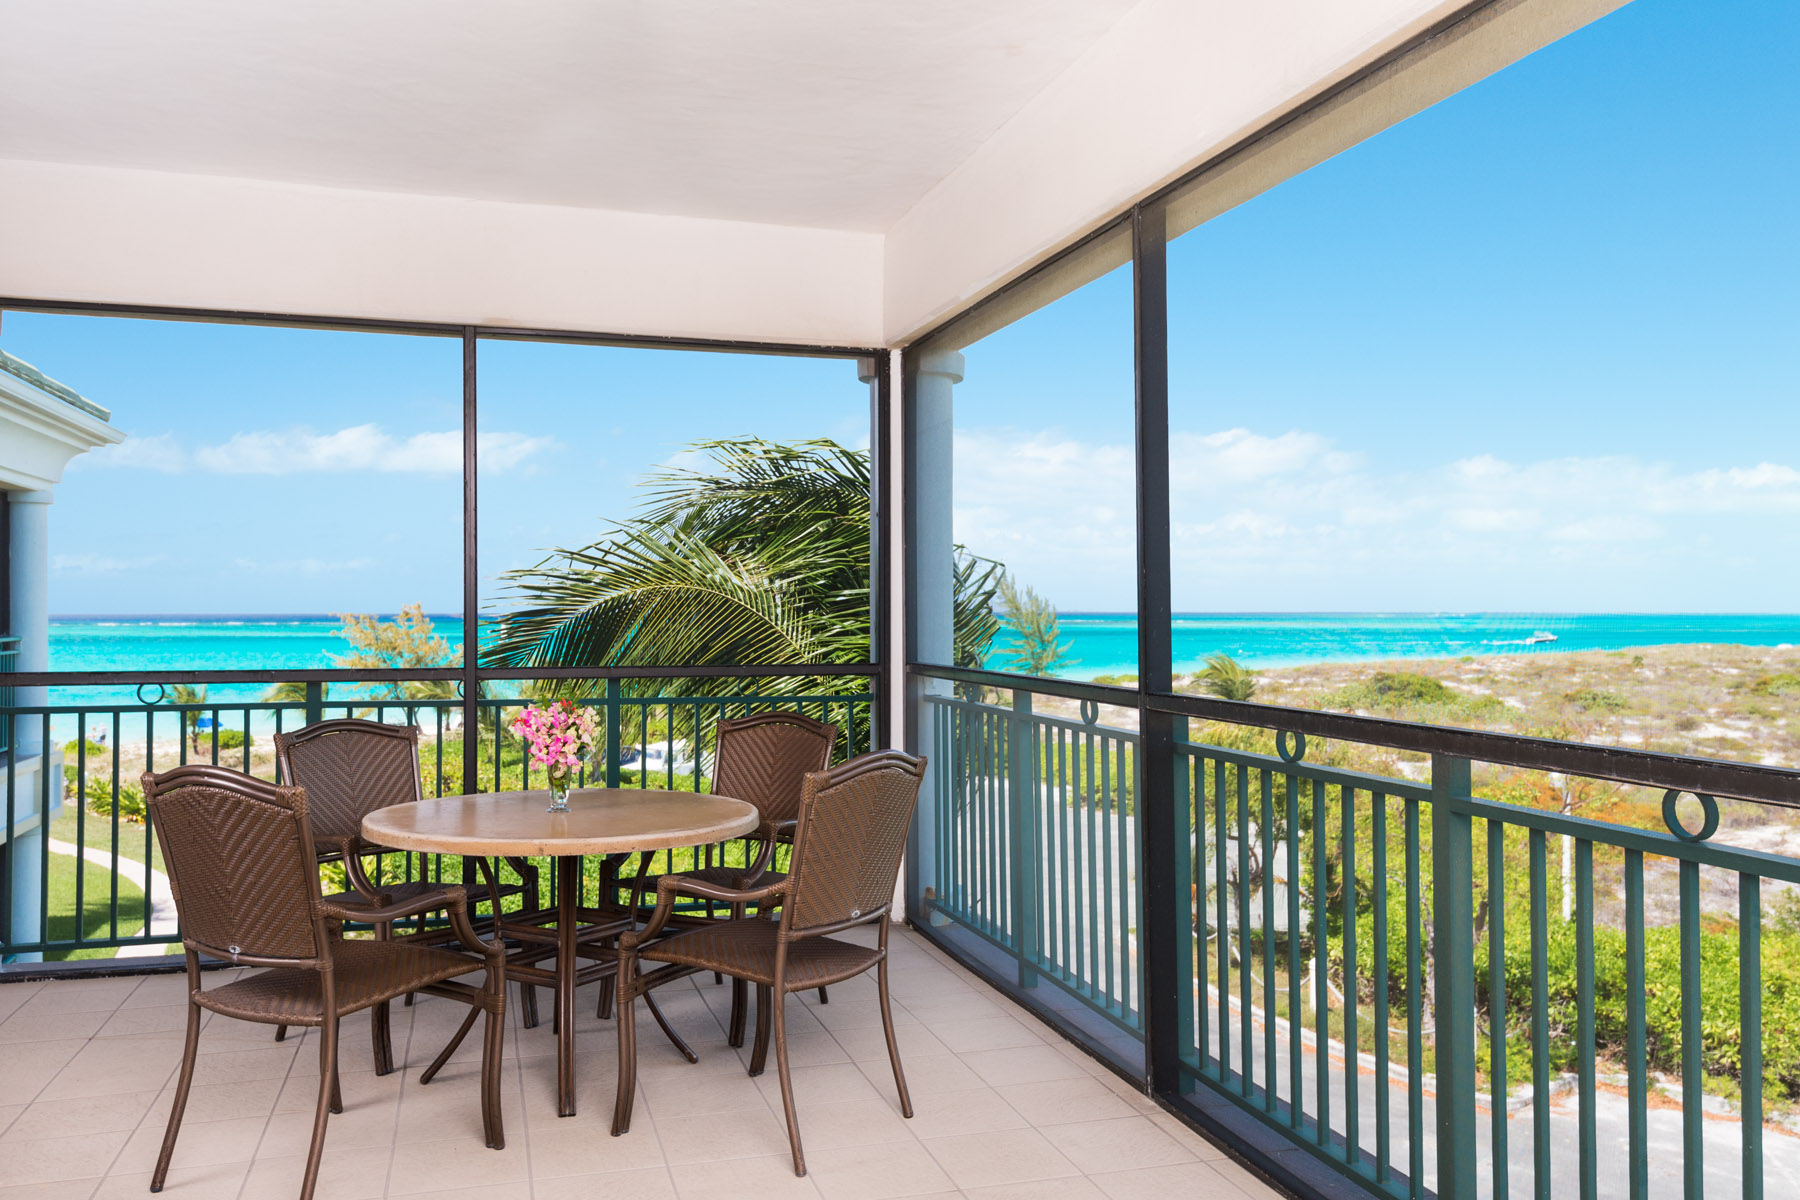 Condominium for Sale at The Sands Penthouse 3311/12 Beachfront Grace Bay, Providenciales TC Turks And Caicos Islands